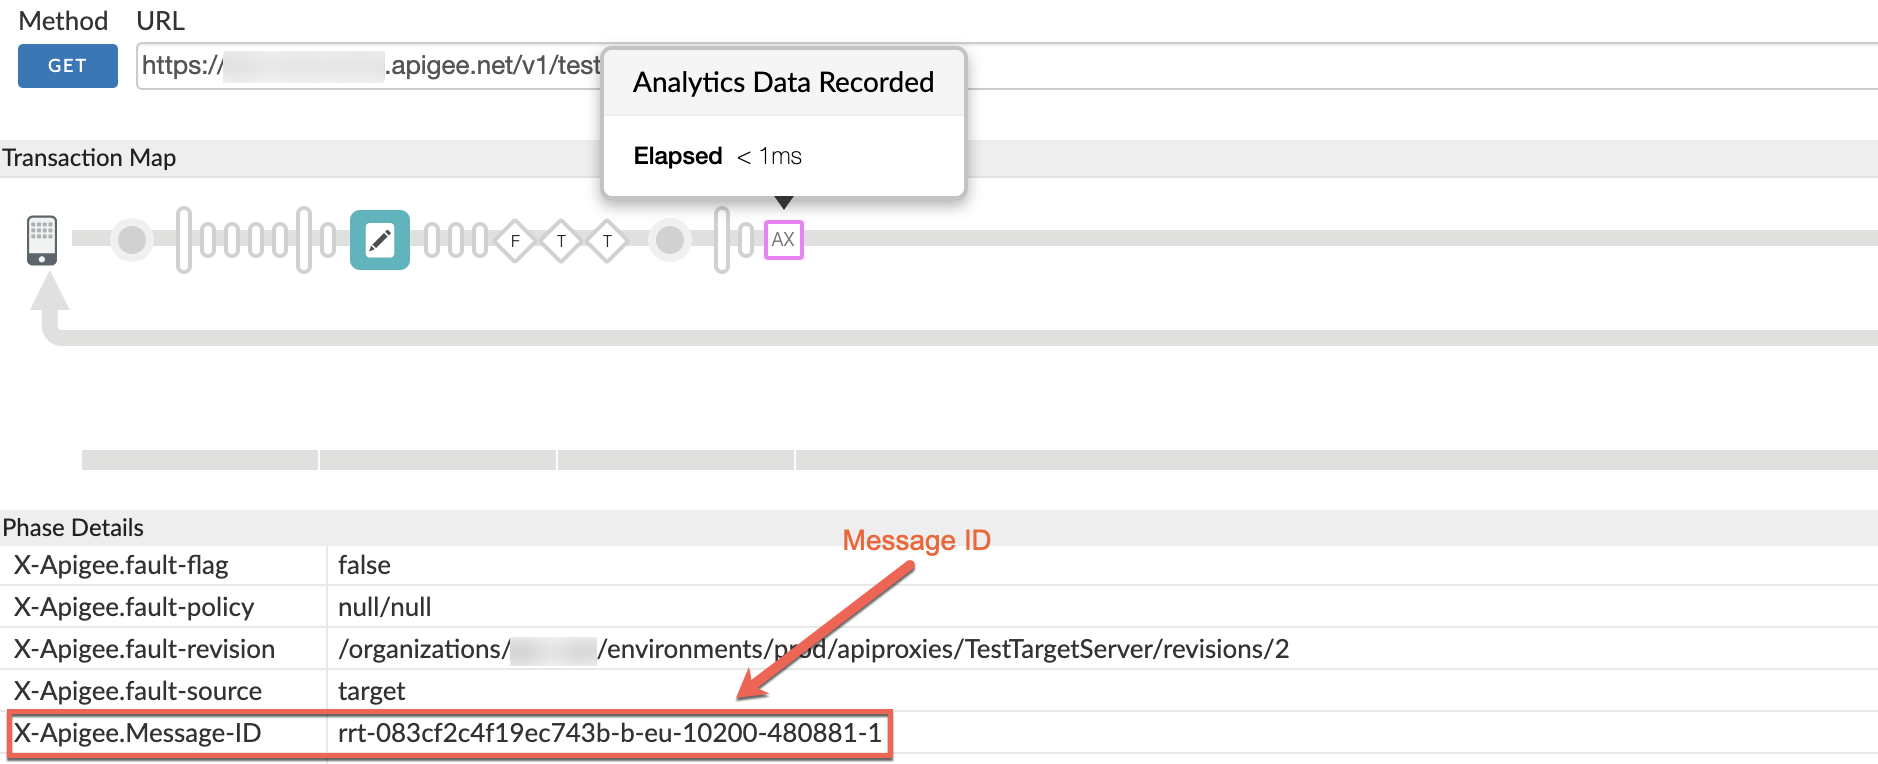 Message ID in Phase Details section